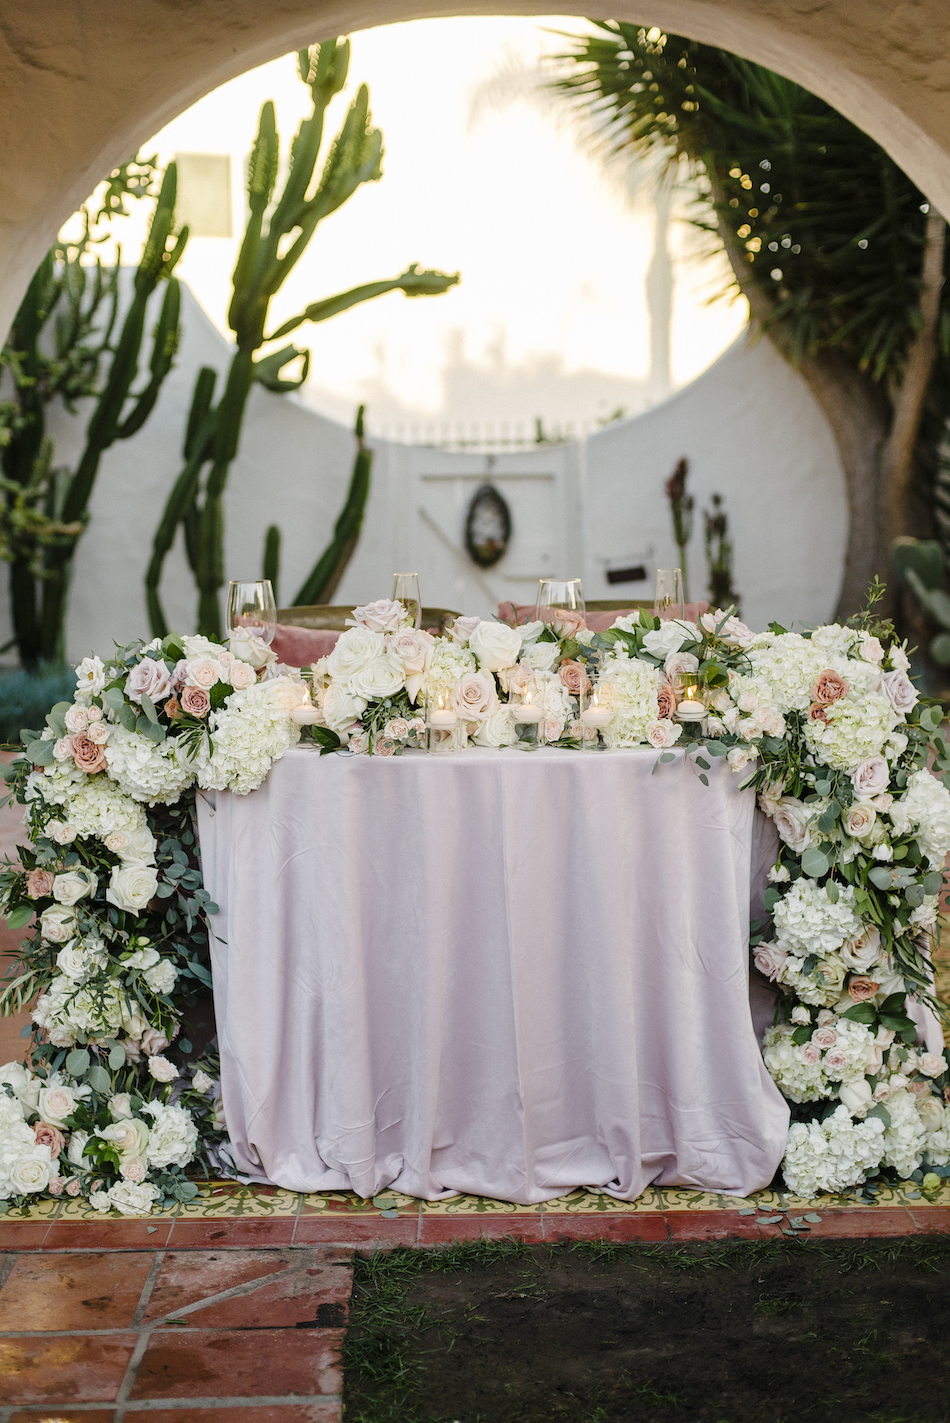 blush sweetheart table, blush wedding reception, floral filled sweetheart table, traditional pastel wedding, Flowers by Cina, orange county wedding florist, orange county weddings, floral design, orange county floral designer, floral designer